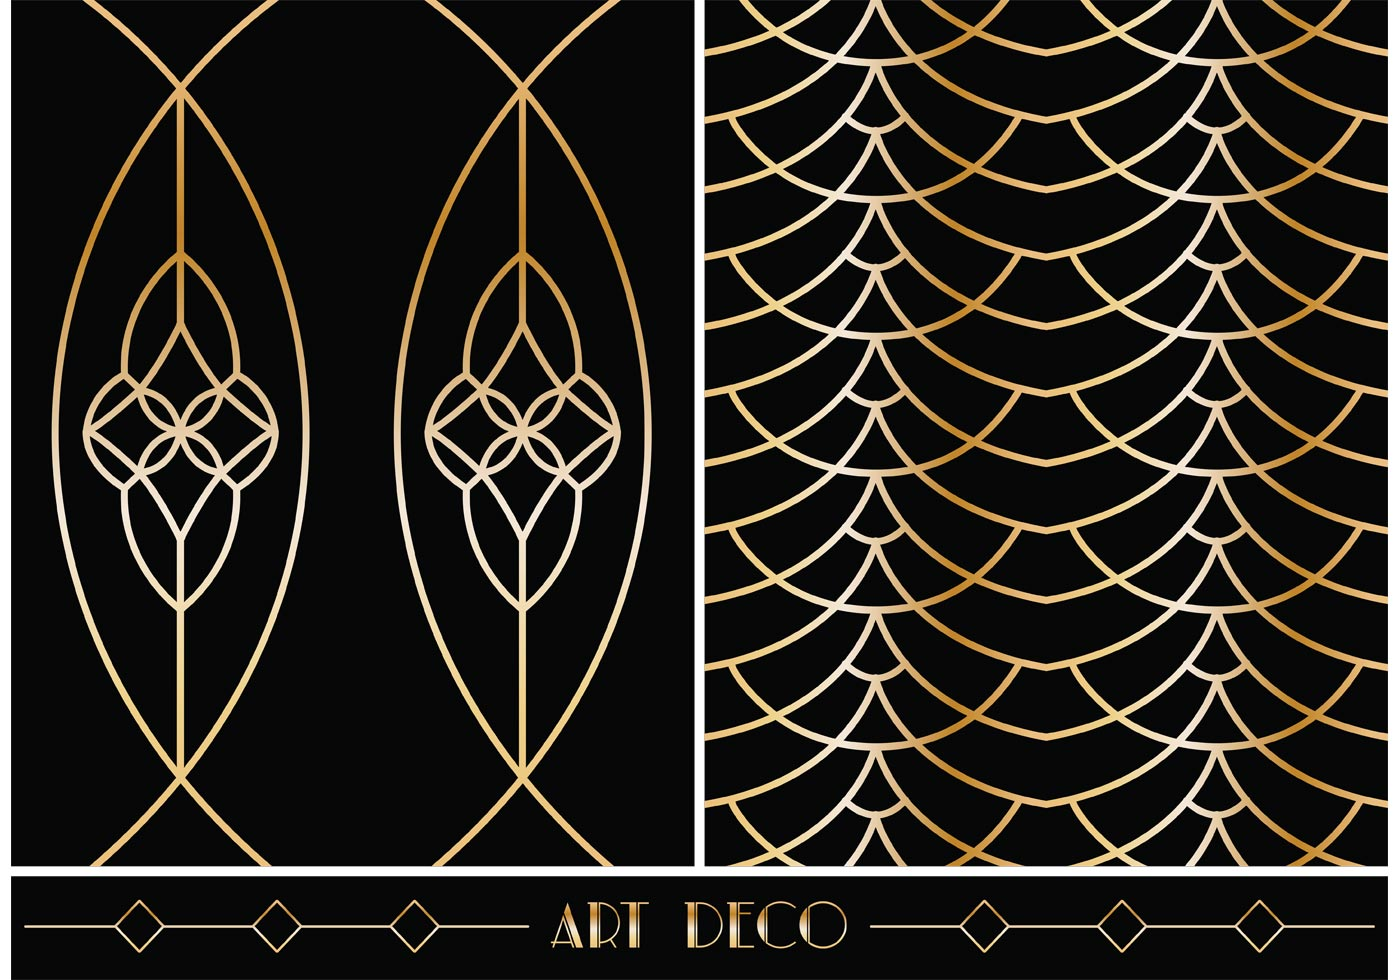 Free art deco geometric vector patterns download free Geometric patterns